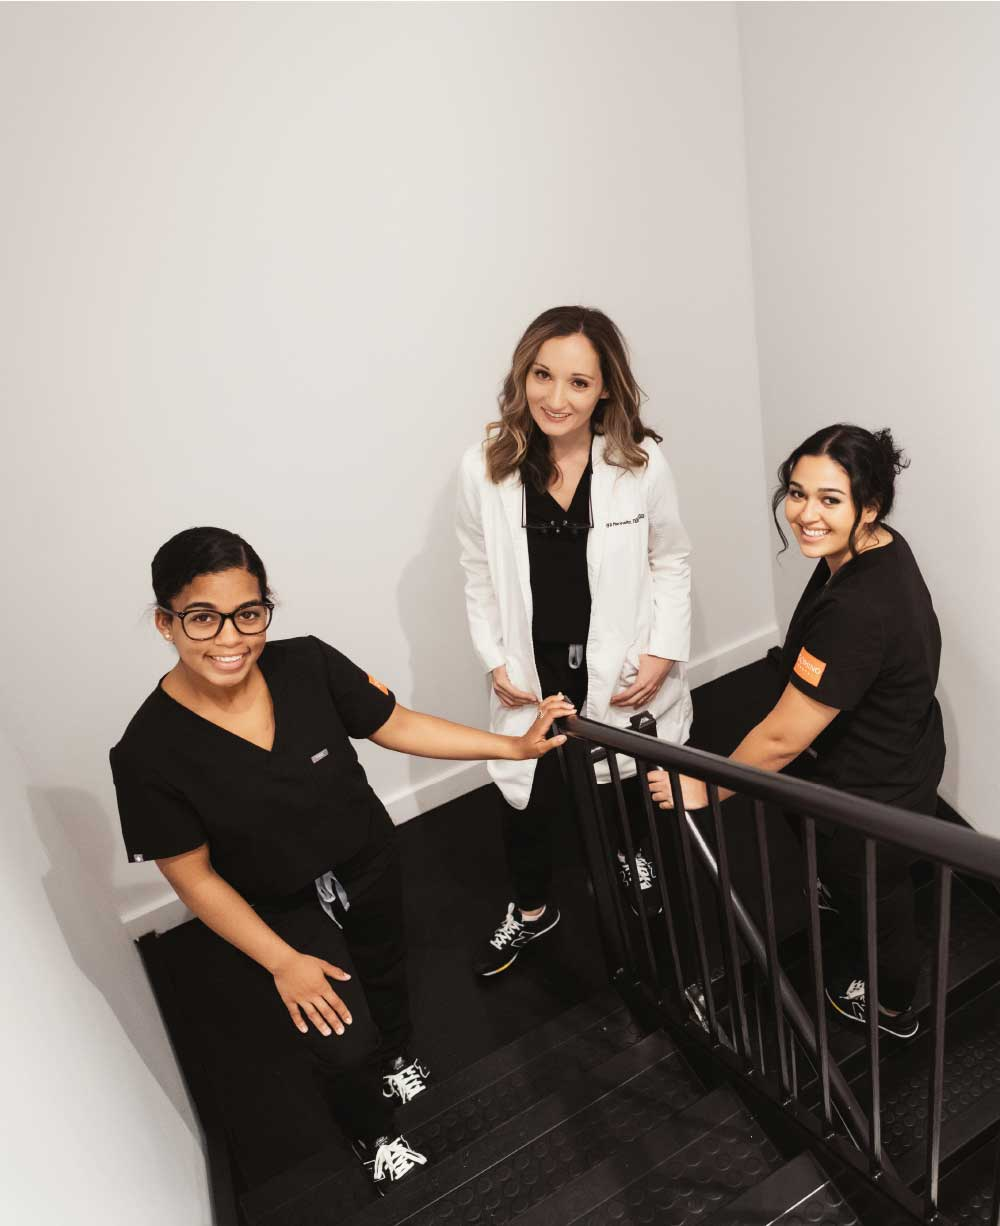 Photo of Dr. Lilya and two team members standing in a stairwell